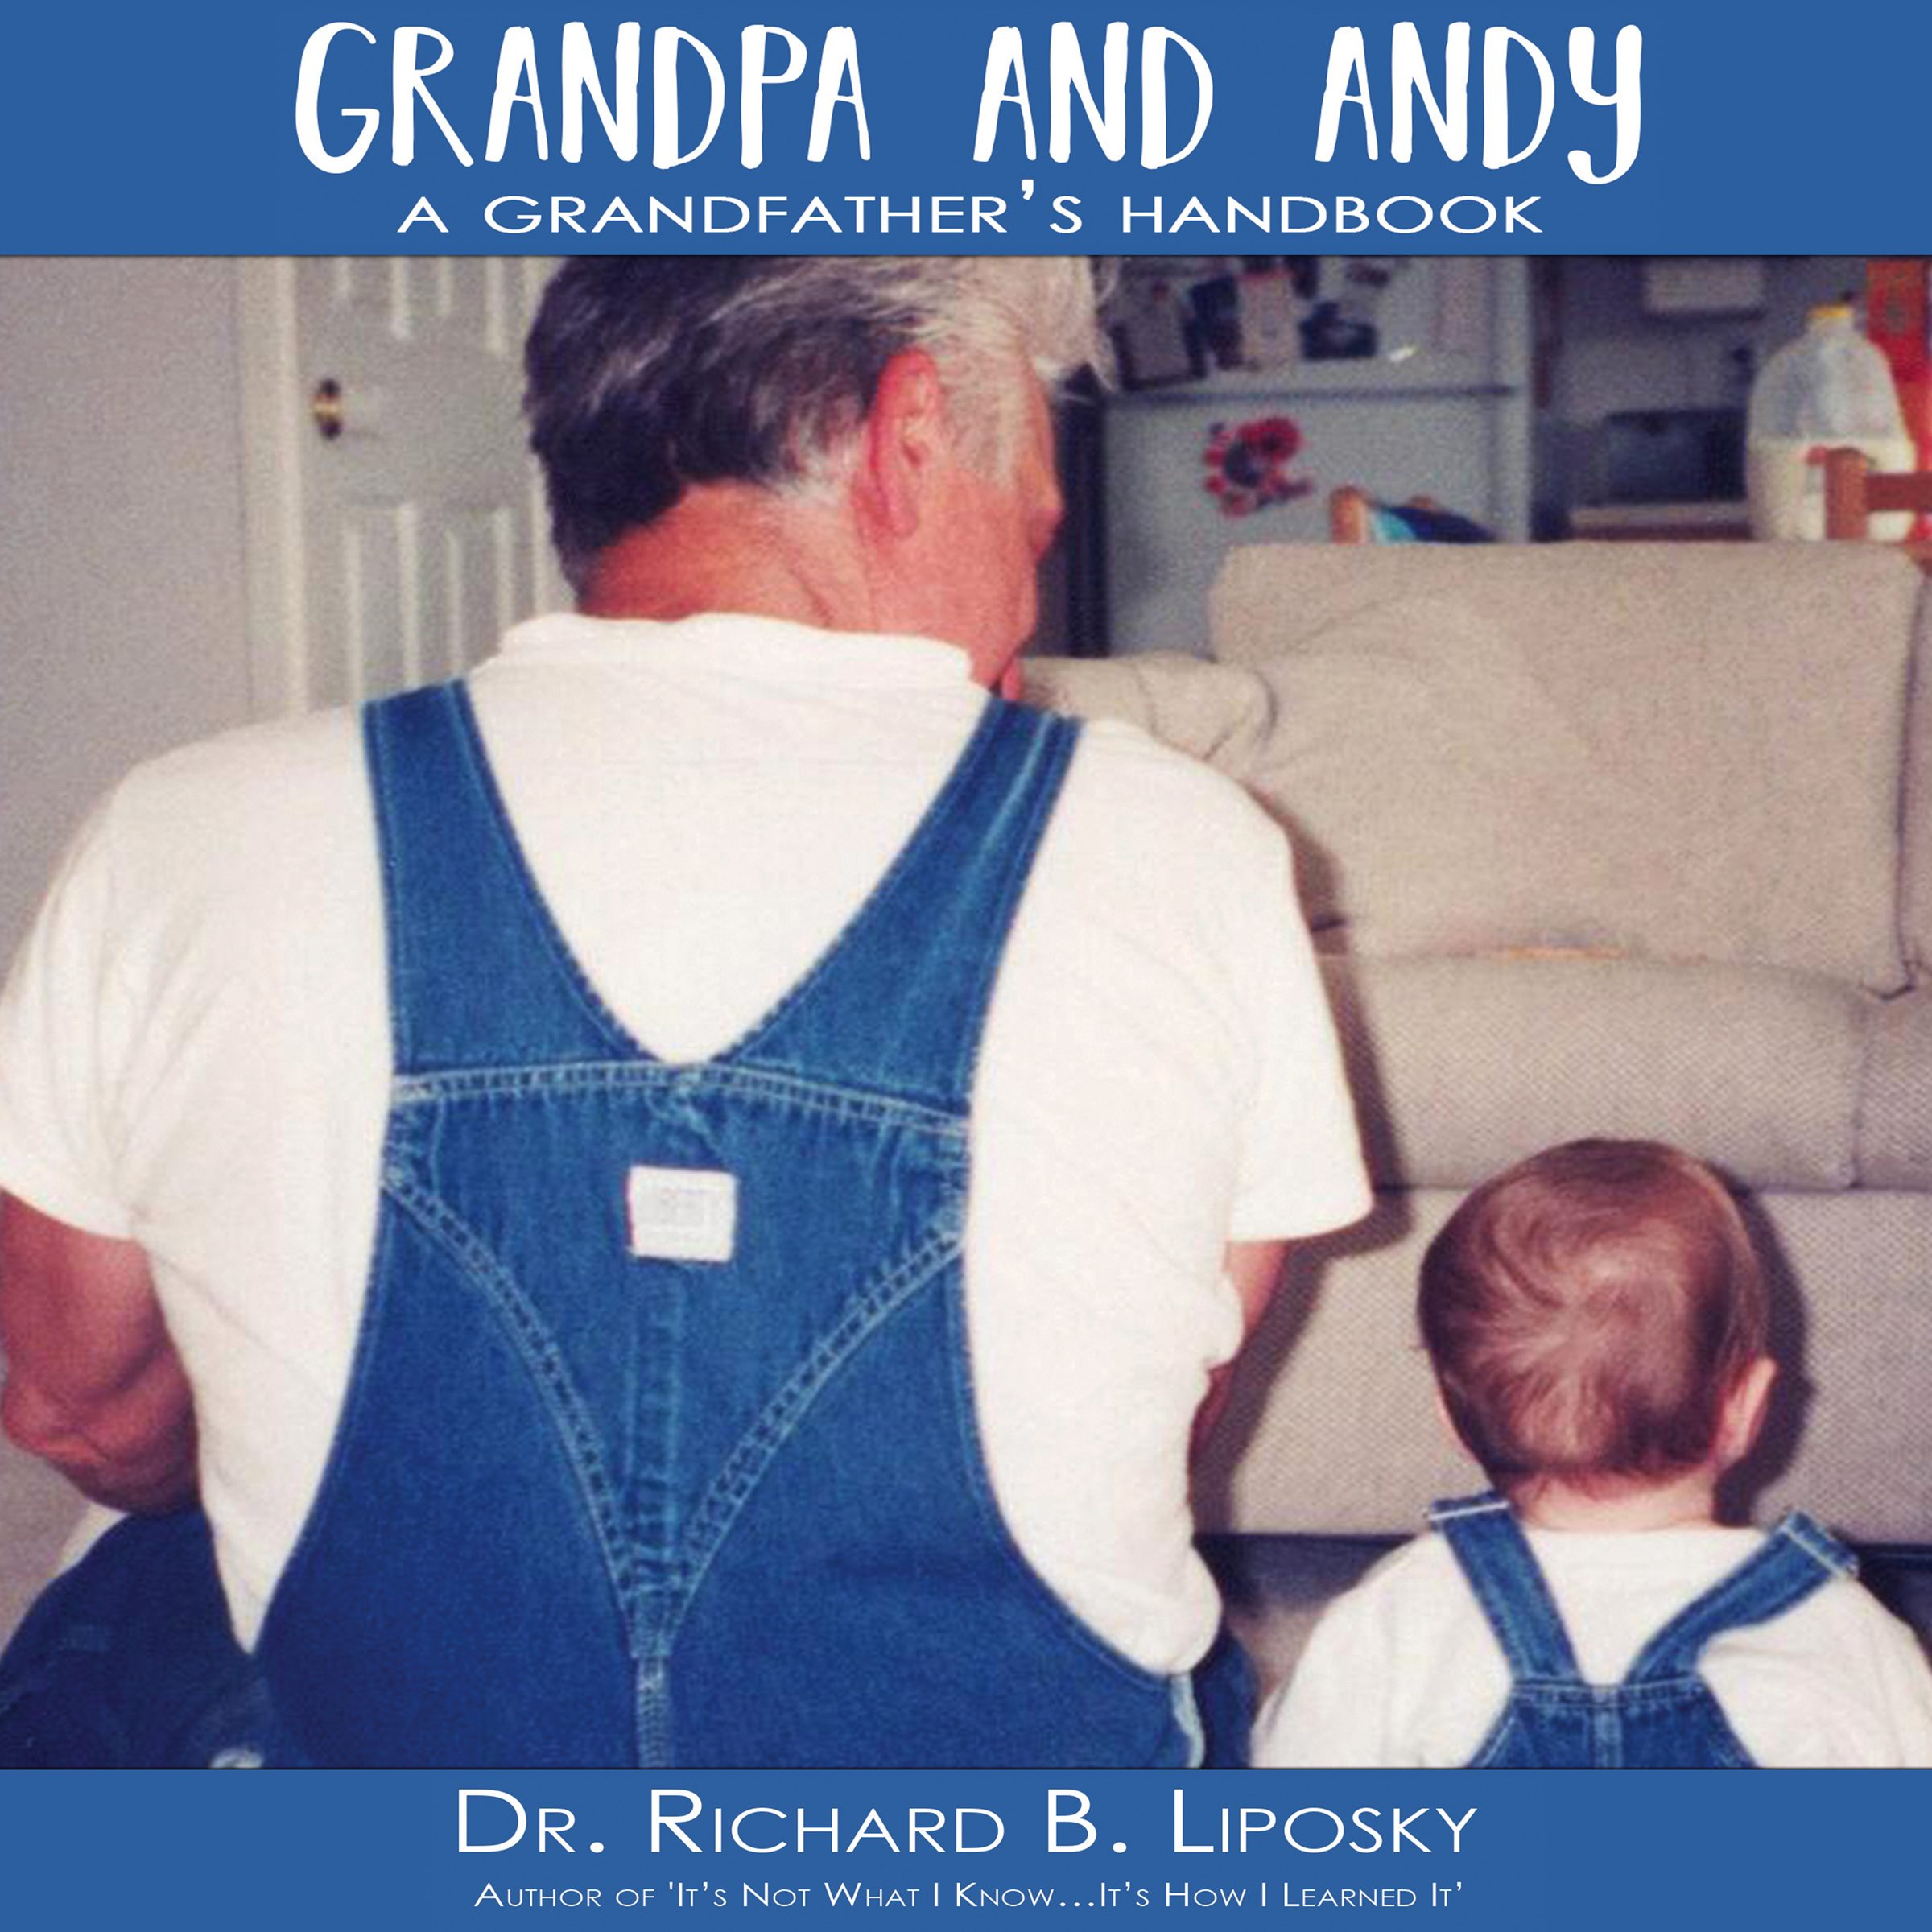 Grandpa and Andy